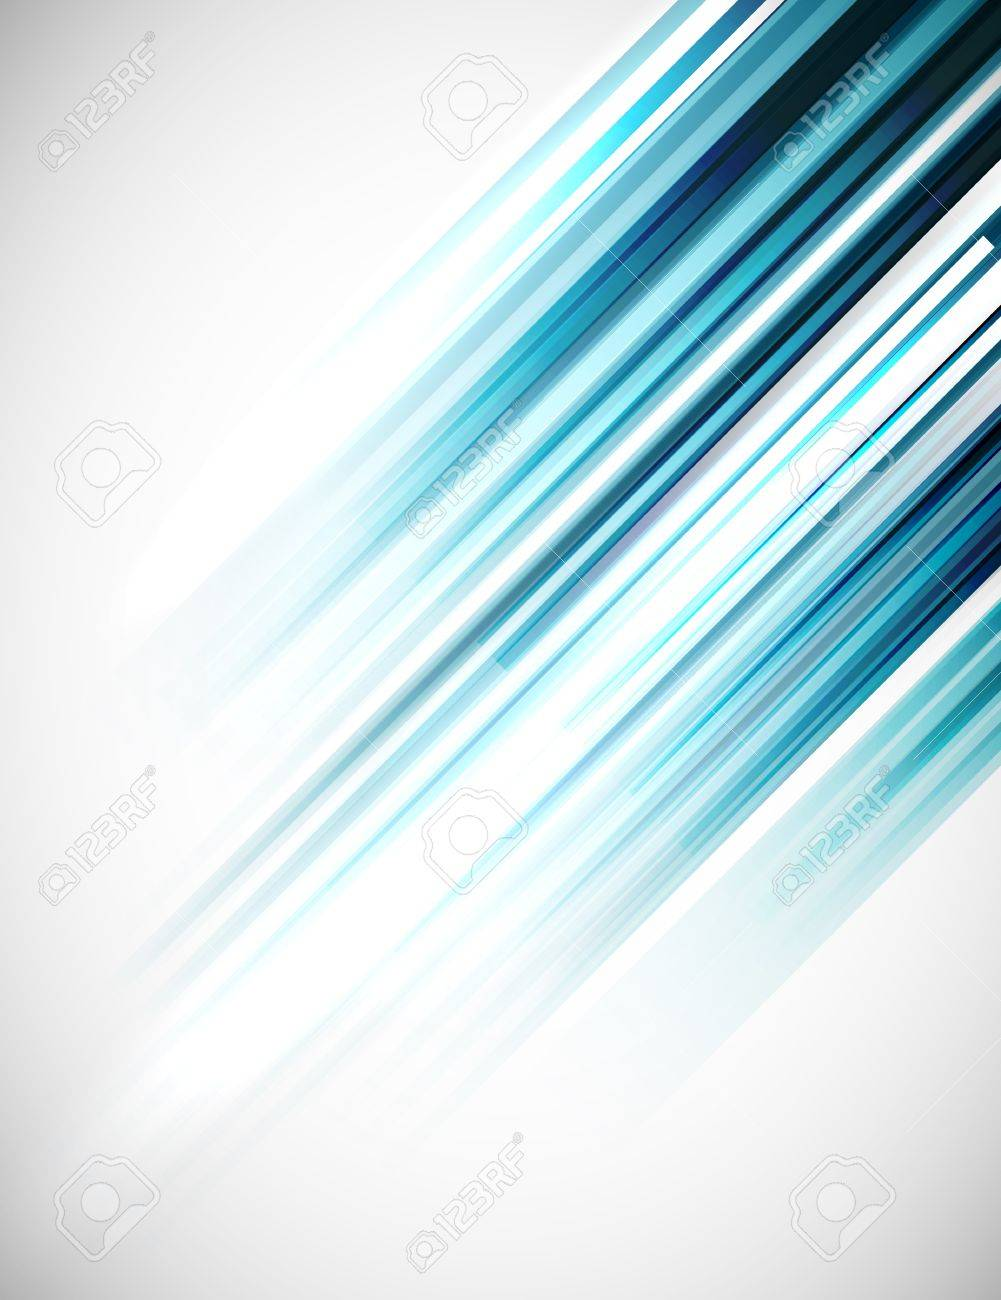 Straight lines vector abstract background Stock Photo - 14634666